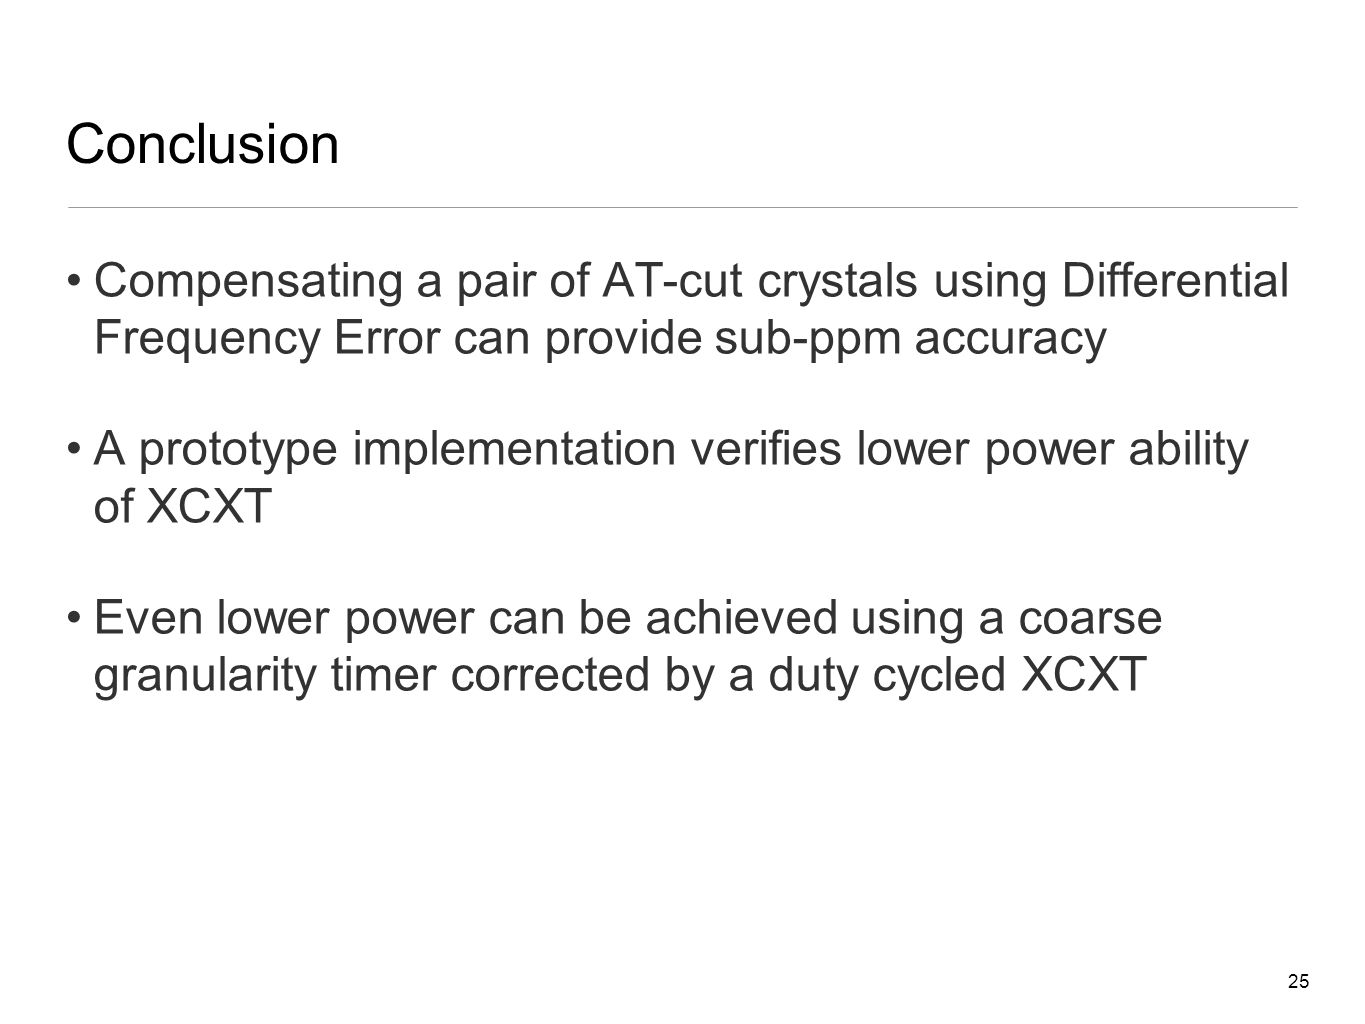 25 Conclusion Compensating a pair of AT-cut crystals using Differential Frequency Error can provide sub-ppm accuracy A prototype implementation verifies lower power ability of XCXT Even lower power can be achieved using a coarse granularity timer corrected by a duty cycled XCXT